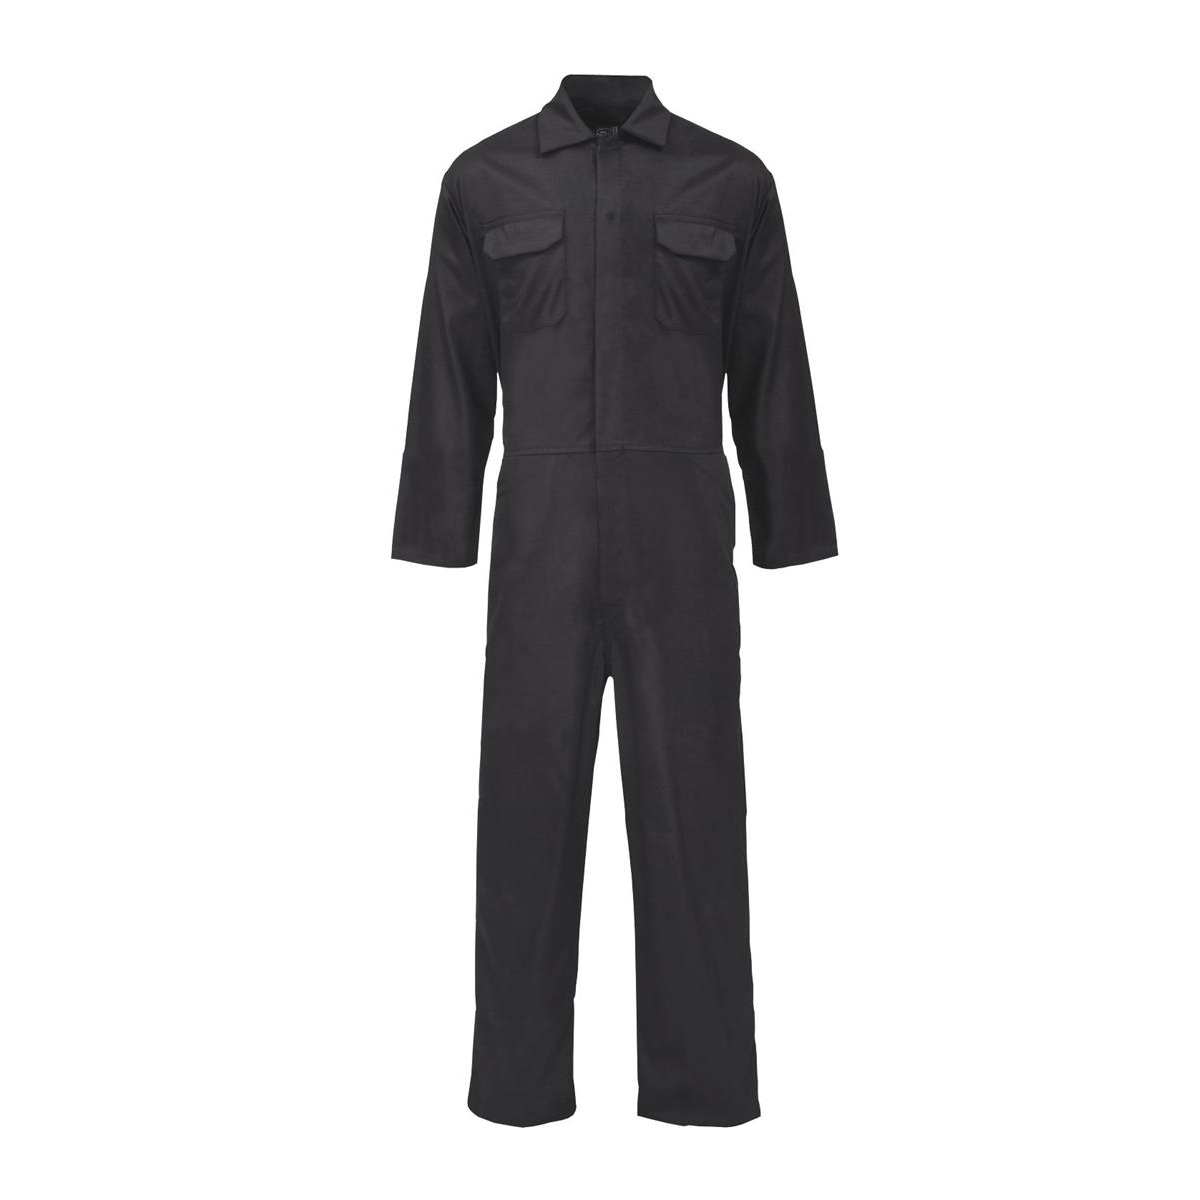 ST Coverall Basic with Popper Front Opening PolyCotton XXXXLarge Black Ref 51707 *Approx 3 Day Leadtime*